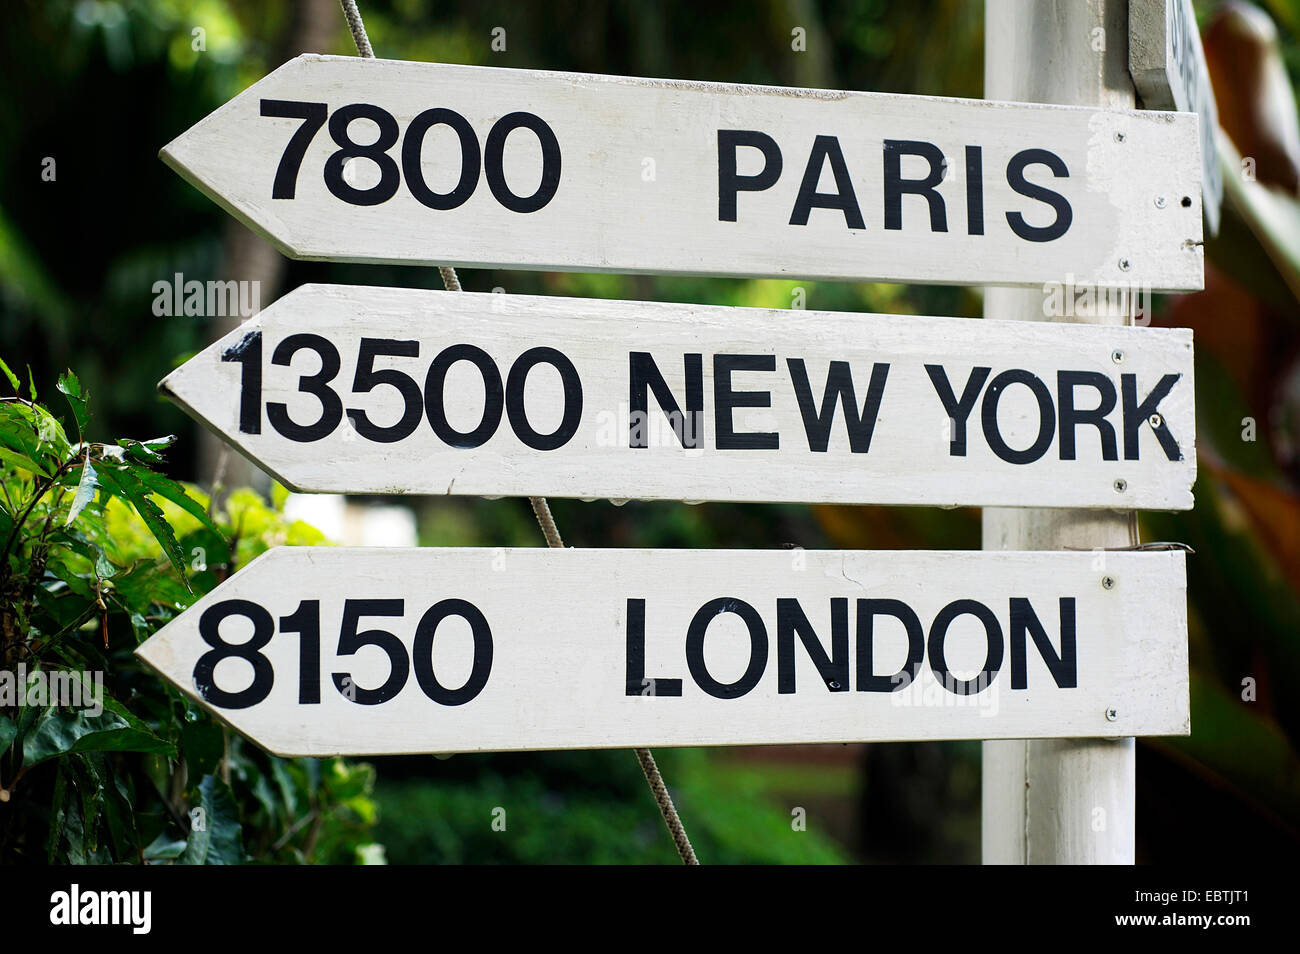 signs with distances to Paris, New York and London, Seychelles - Stock Image